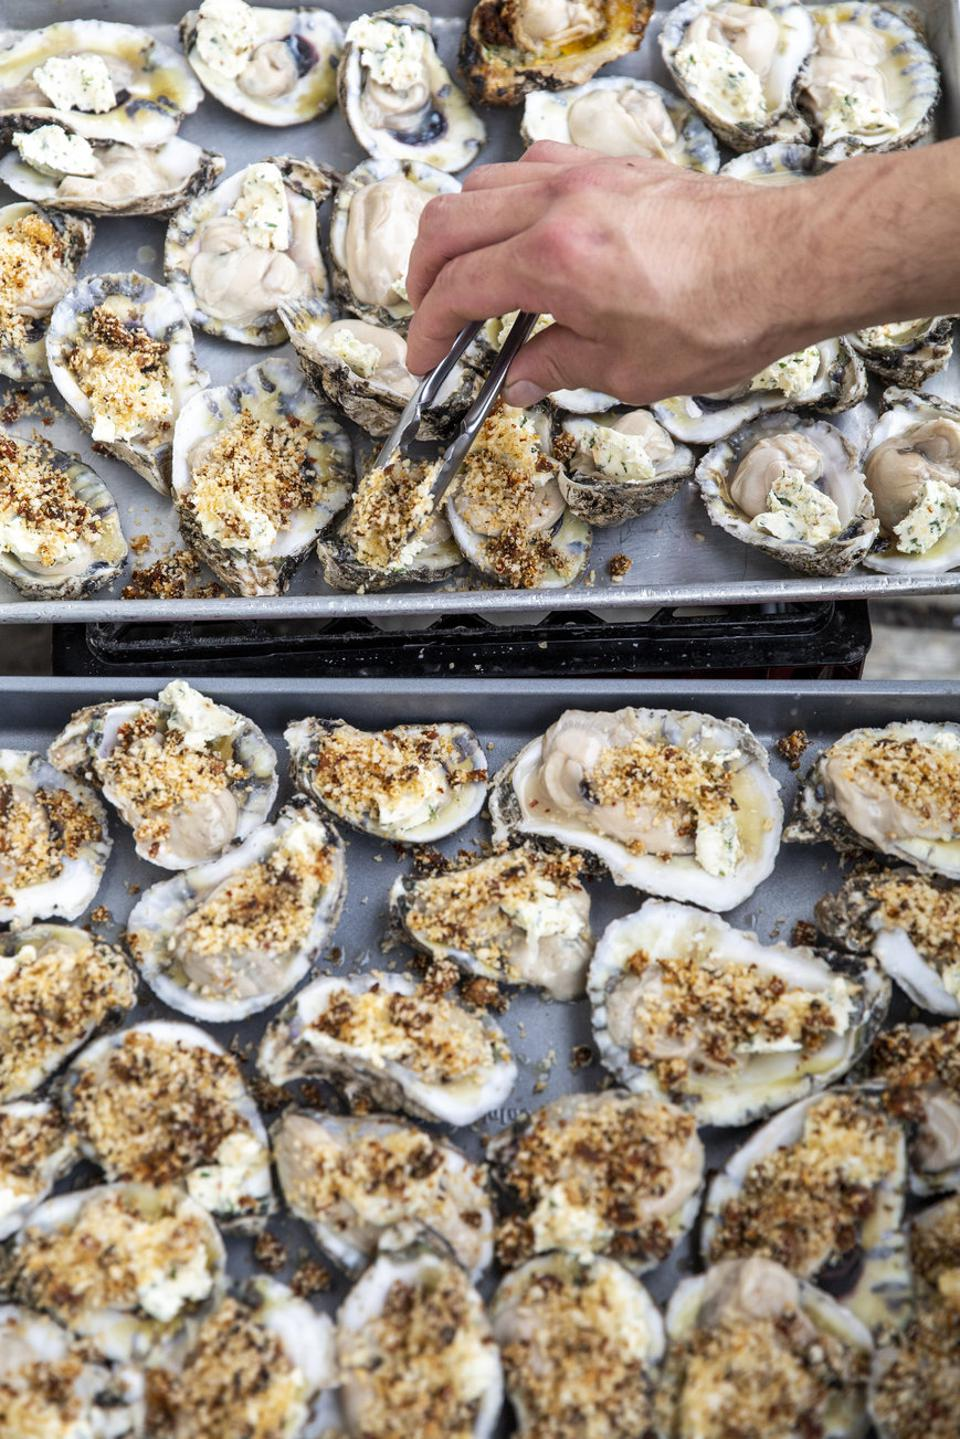 Aerial shot of grilled oysters.